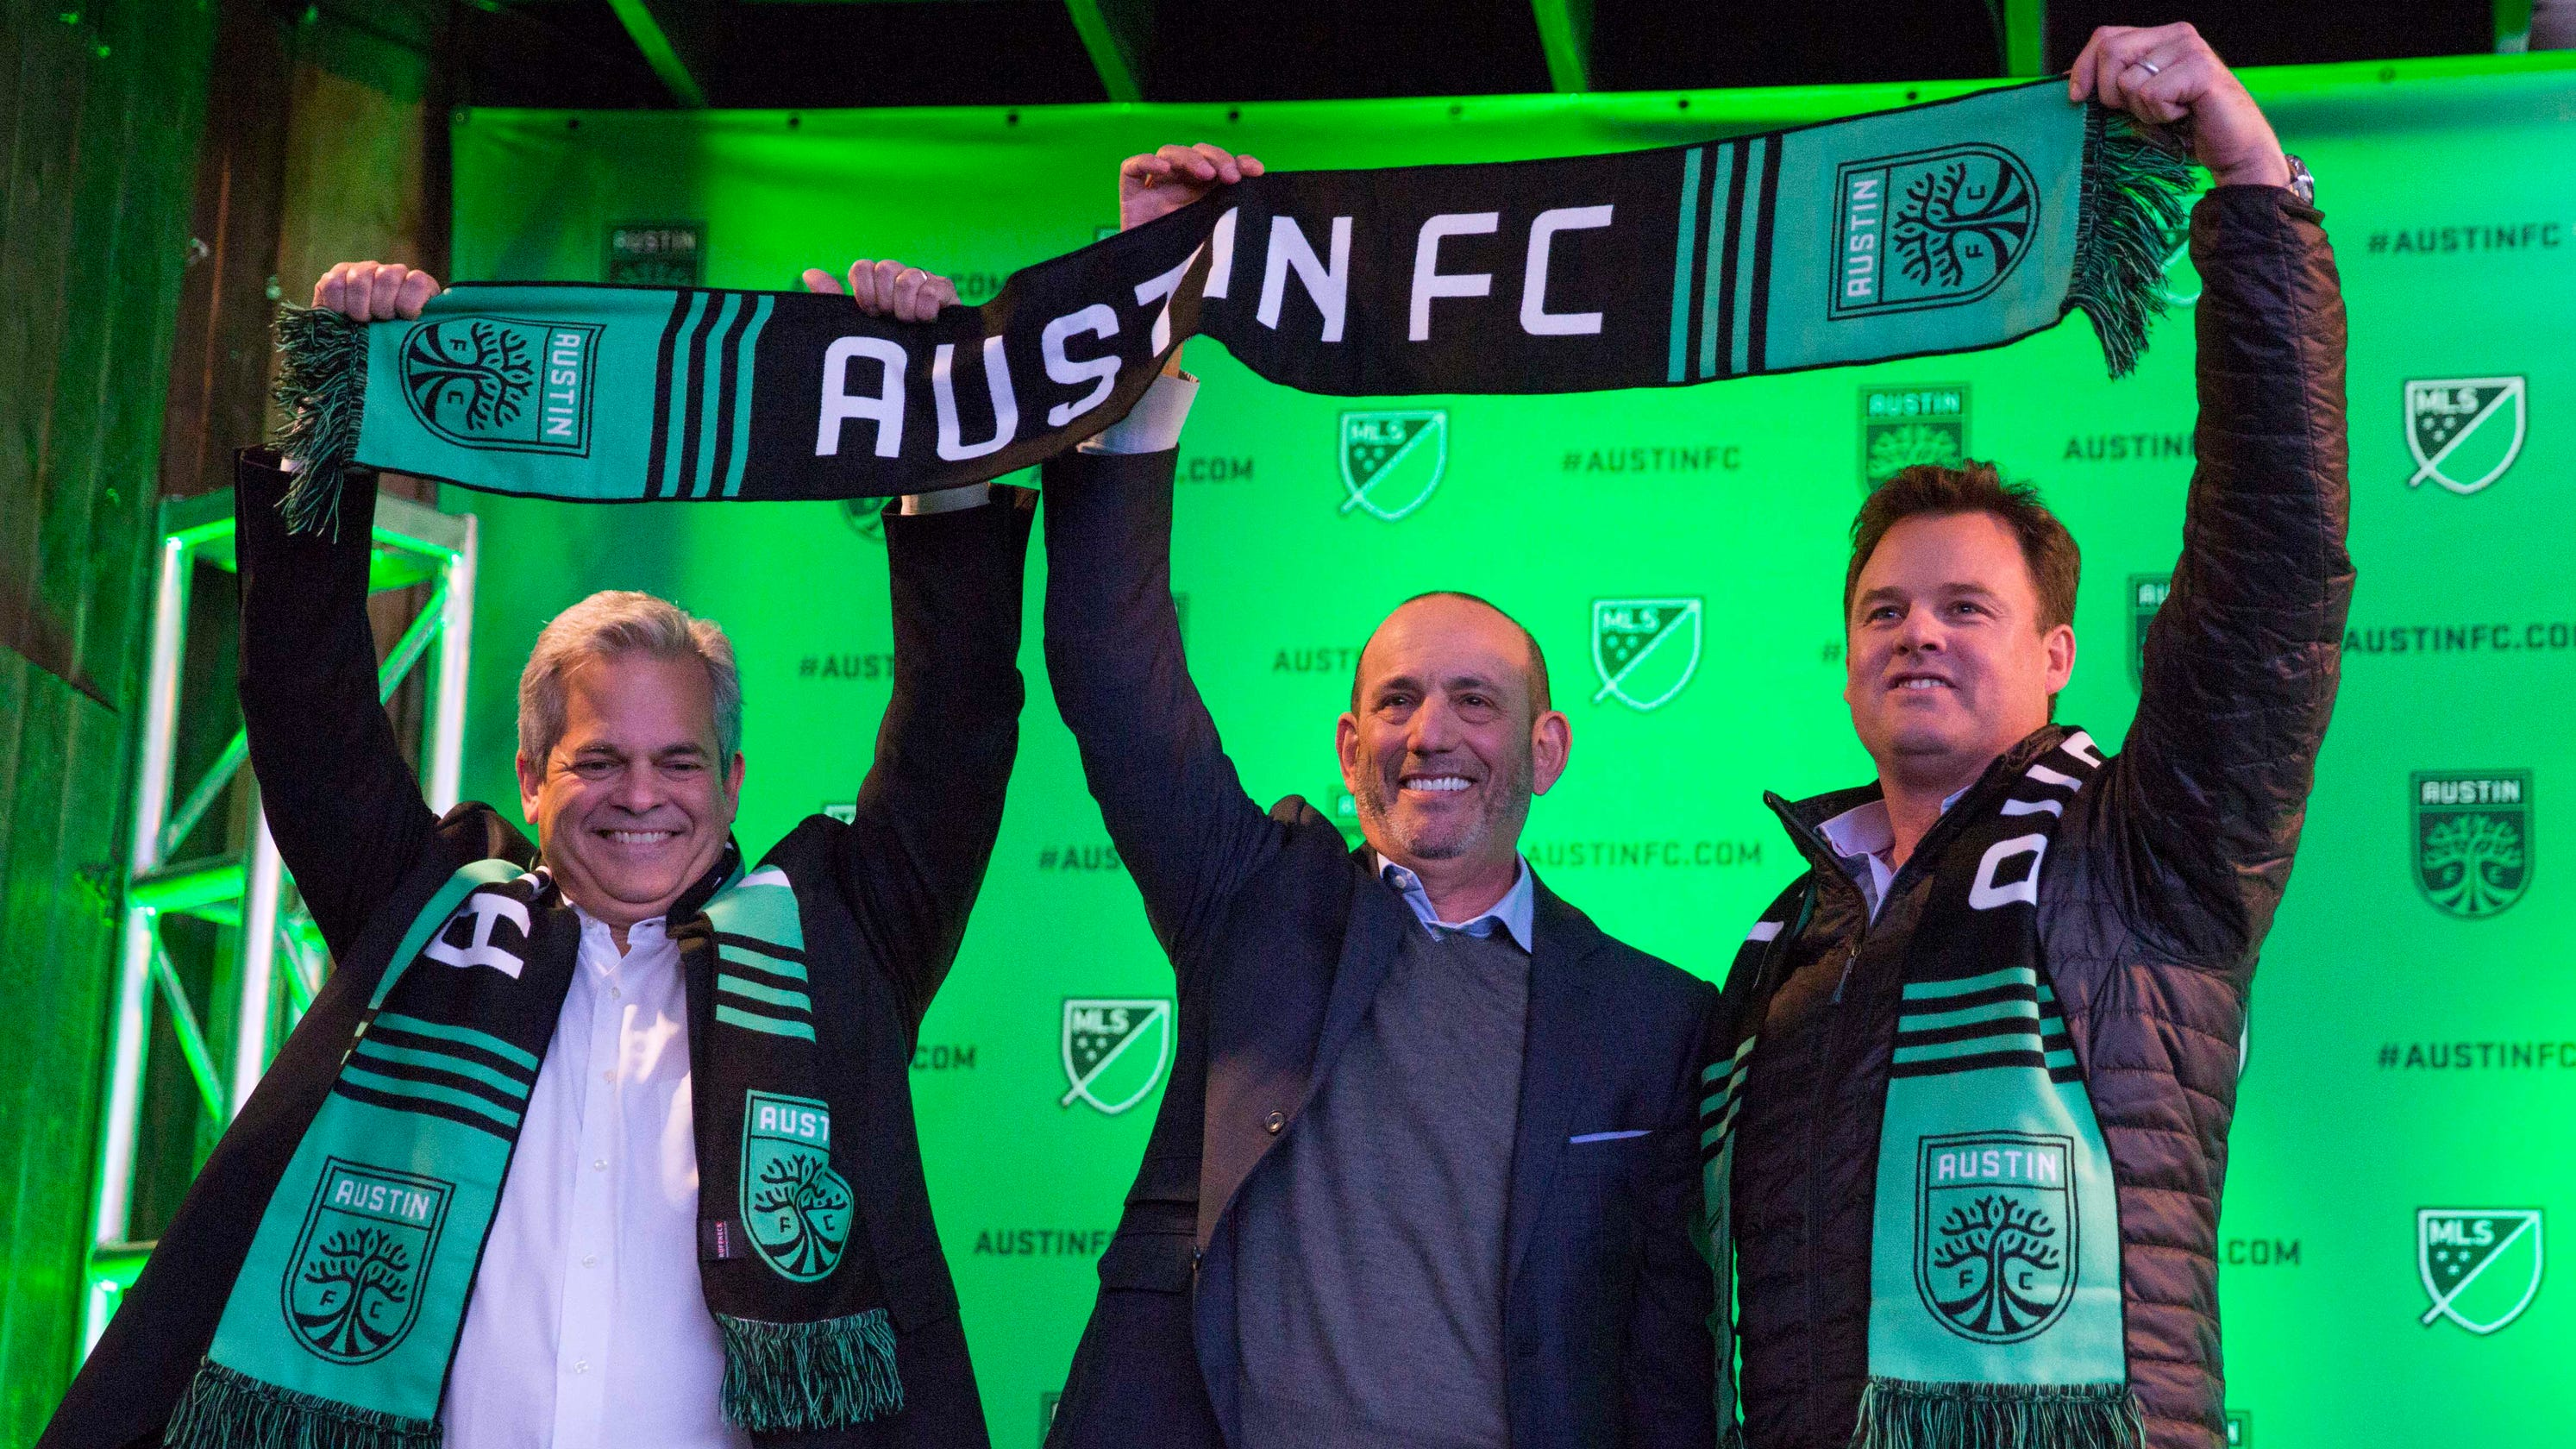 Adrian Healey, longtime ESPN announcer, to be voice of Austin FC